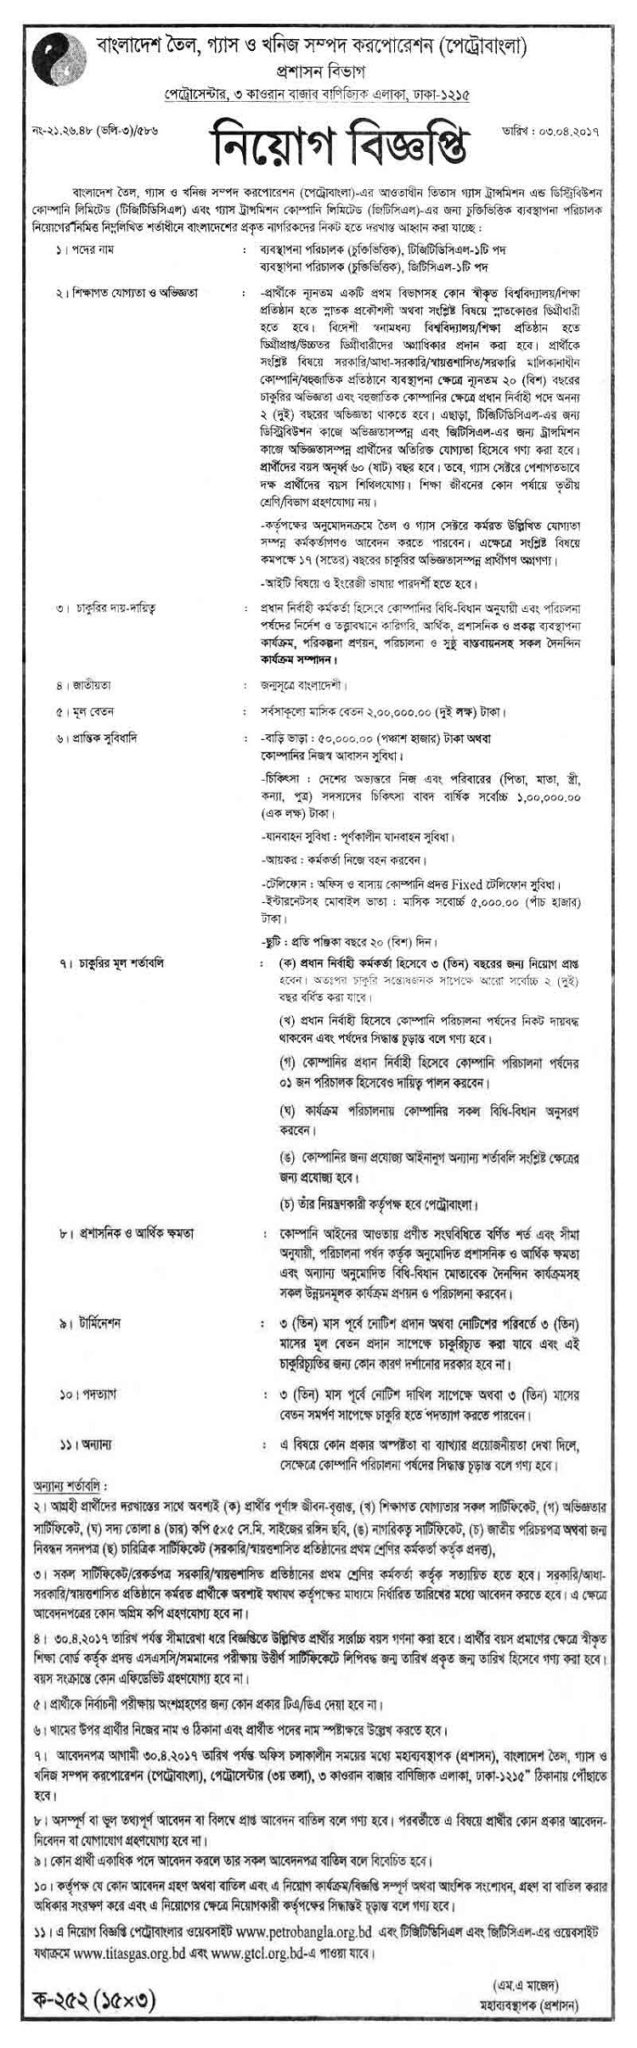 Bangladesh Oil gas company (Petrobangla) Job Circular April 2017